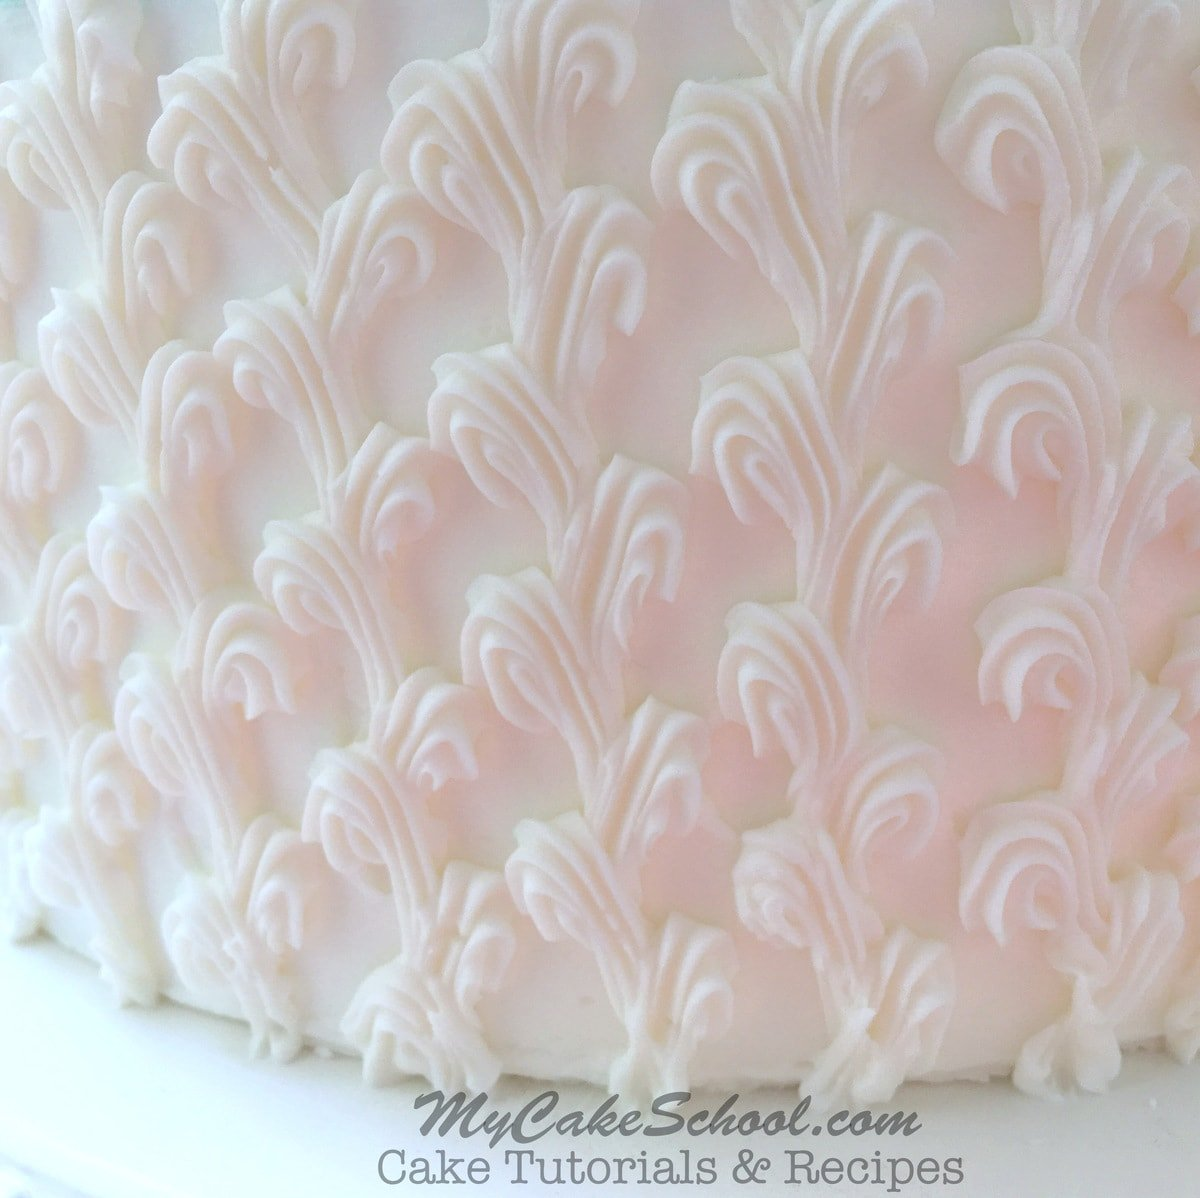 Wedding Gown Cakes: Wedding Dress In Buttercream- A Free Cake Decorating